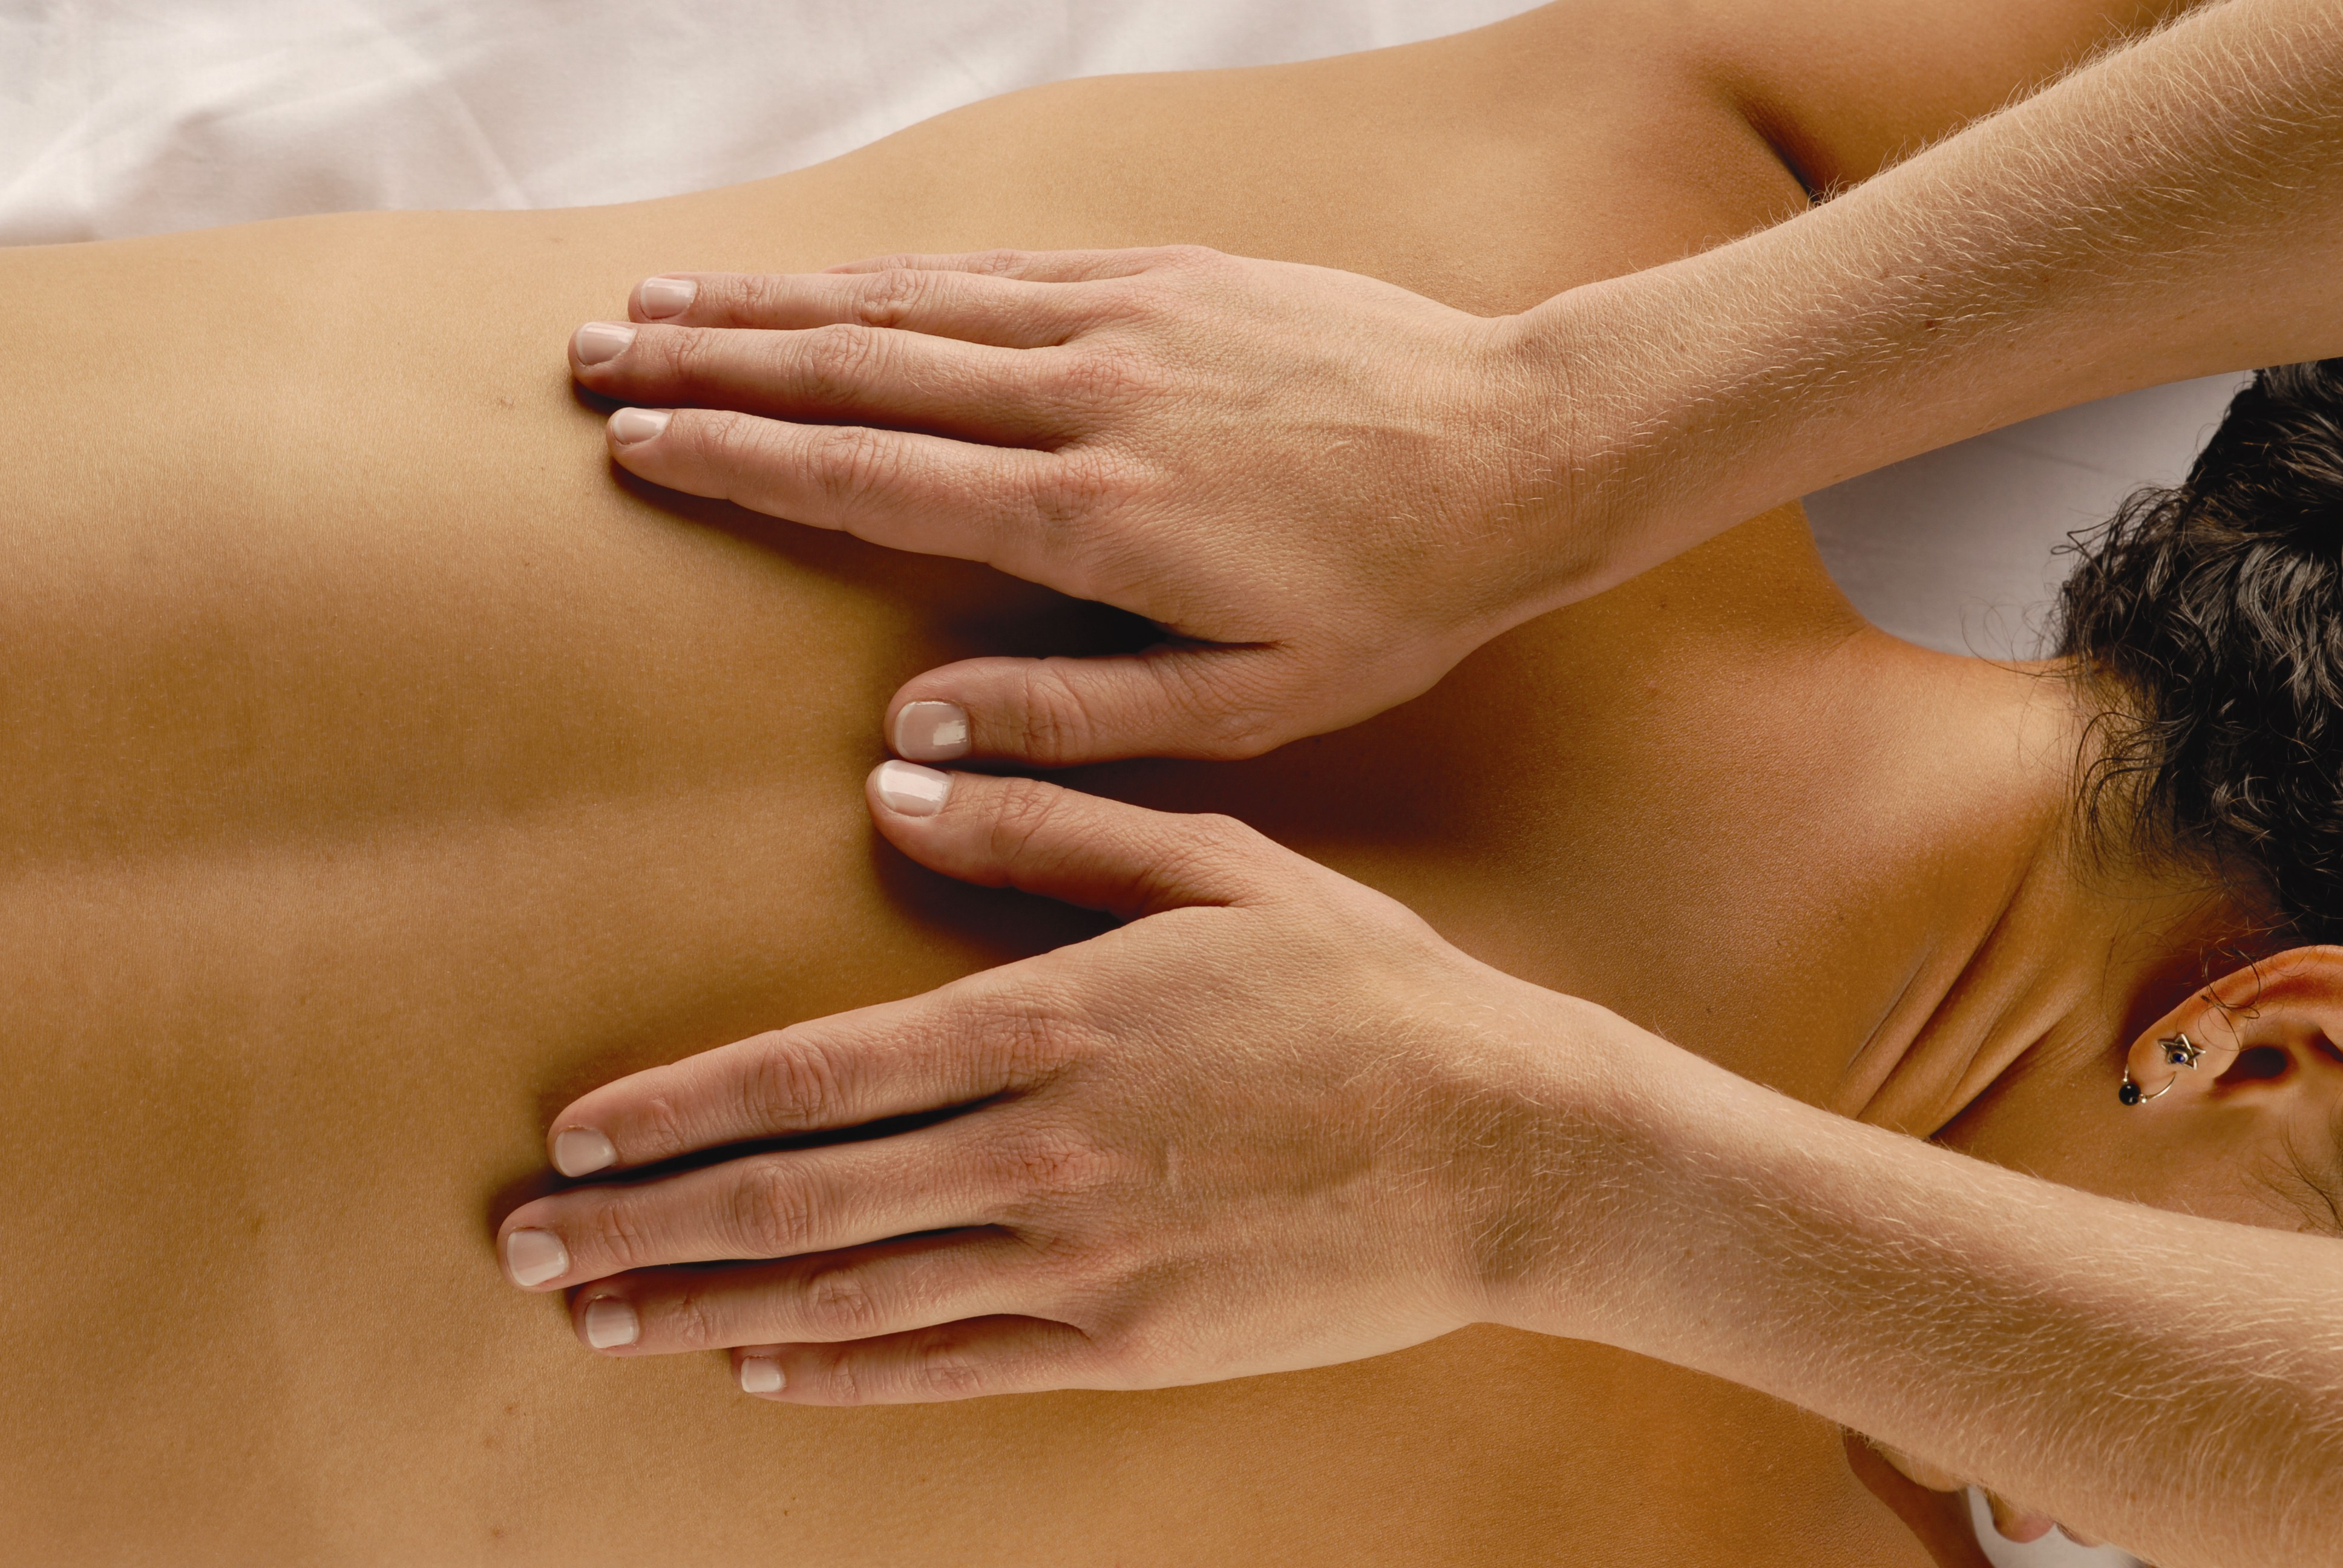 Massage therapists hope for a happy ending